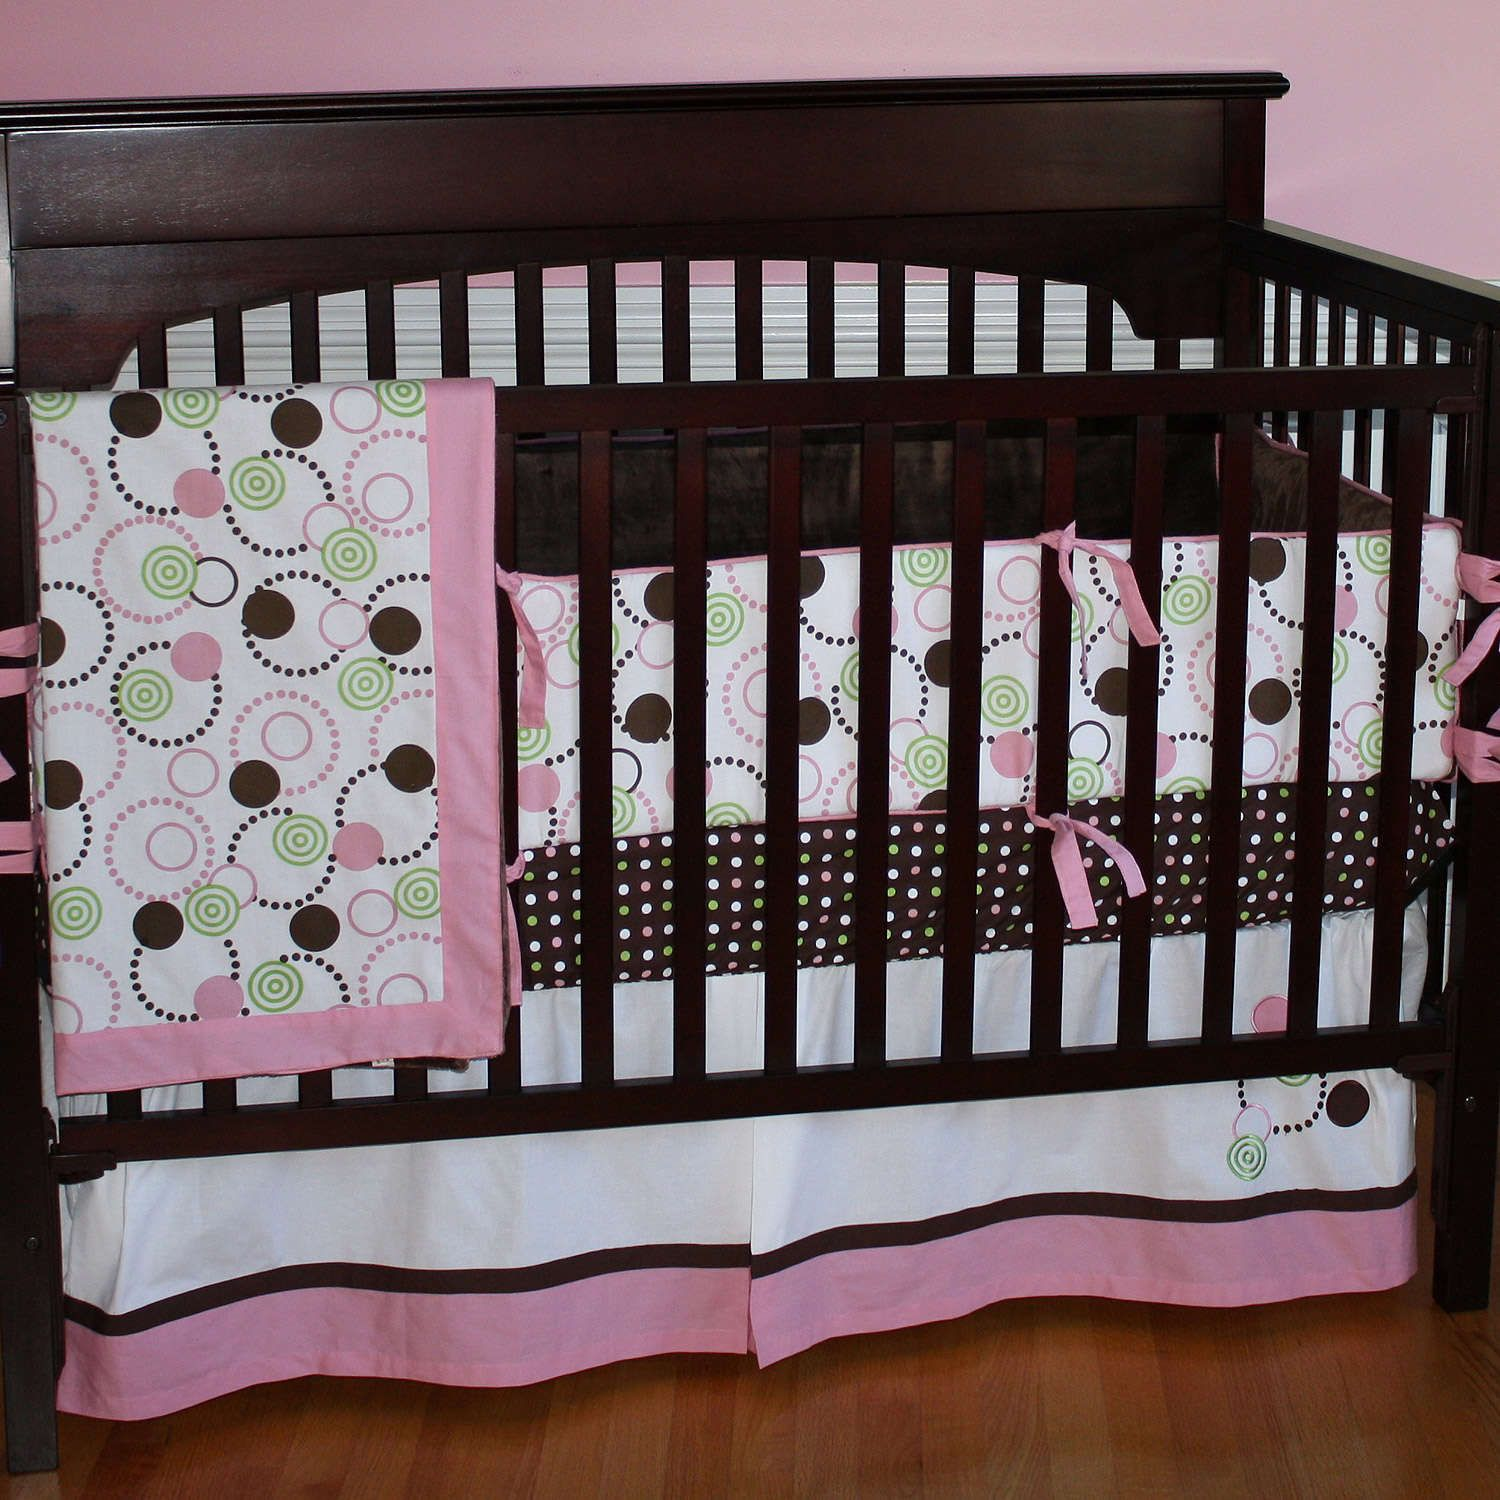 Baby room ideas pink and brown - Find This Pin And More On Future Someday Baby Ideas Discontinued Circle Time Pink Brown